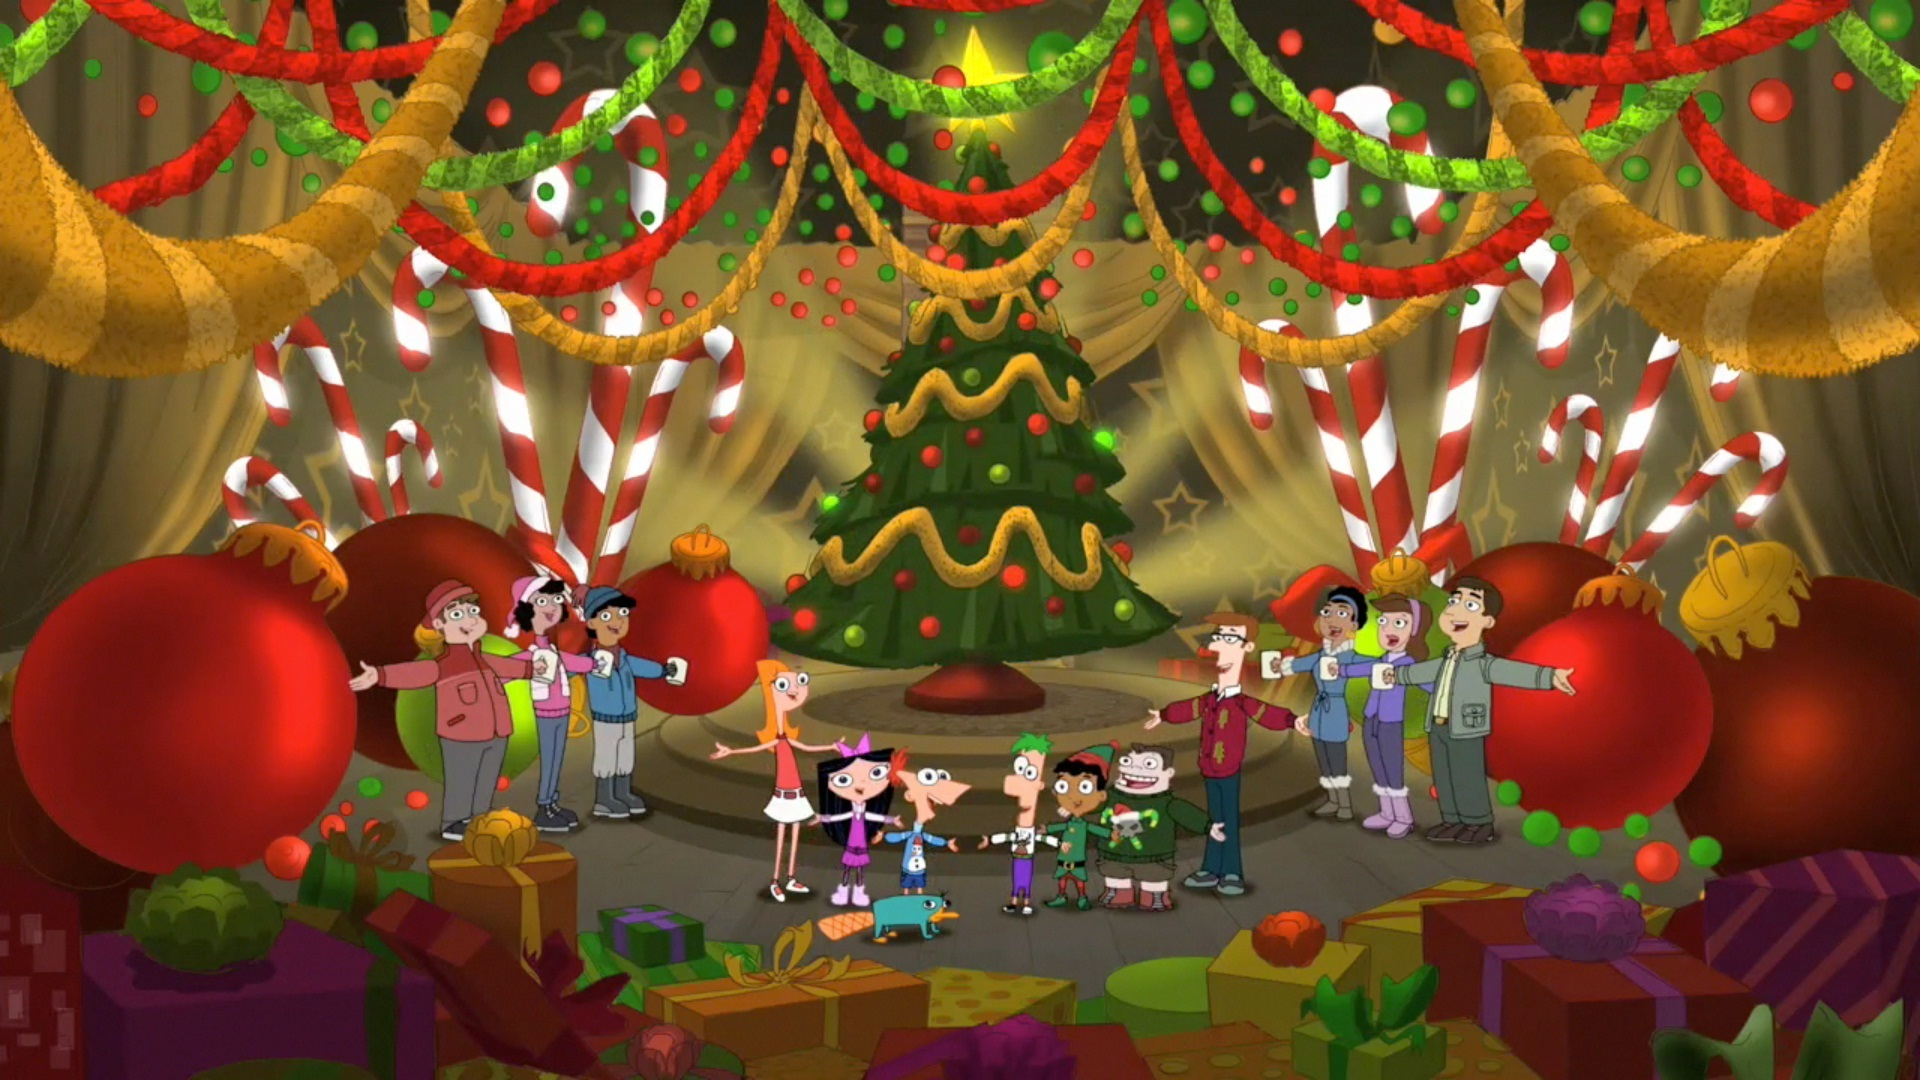 We Wish You A Merry Christmas | Phineas and Ferb Wiki | FANDOM powered by  Wikia